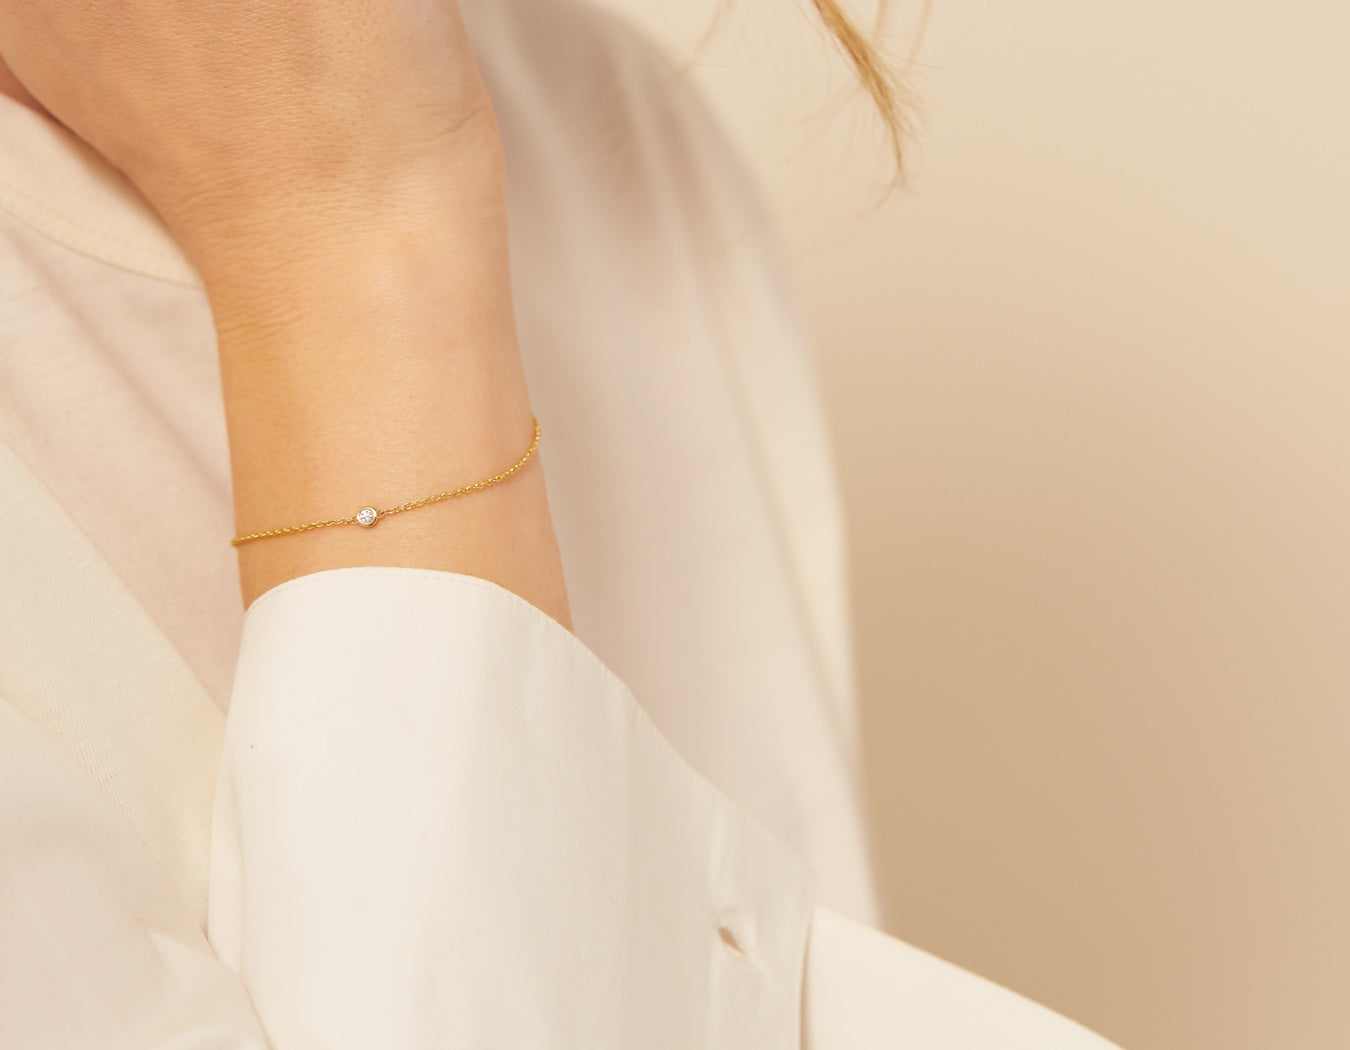 Model wearing simple classic Solitaire Bracelet delicate chain lobster clasp 14k yellow gold .04 ct round diamond Vrai & Oro, 14K White Gold